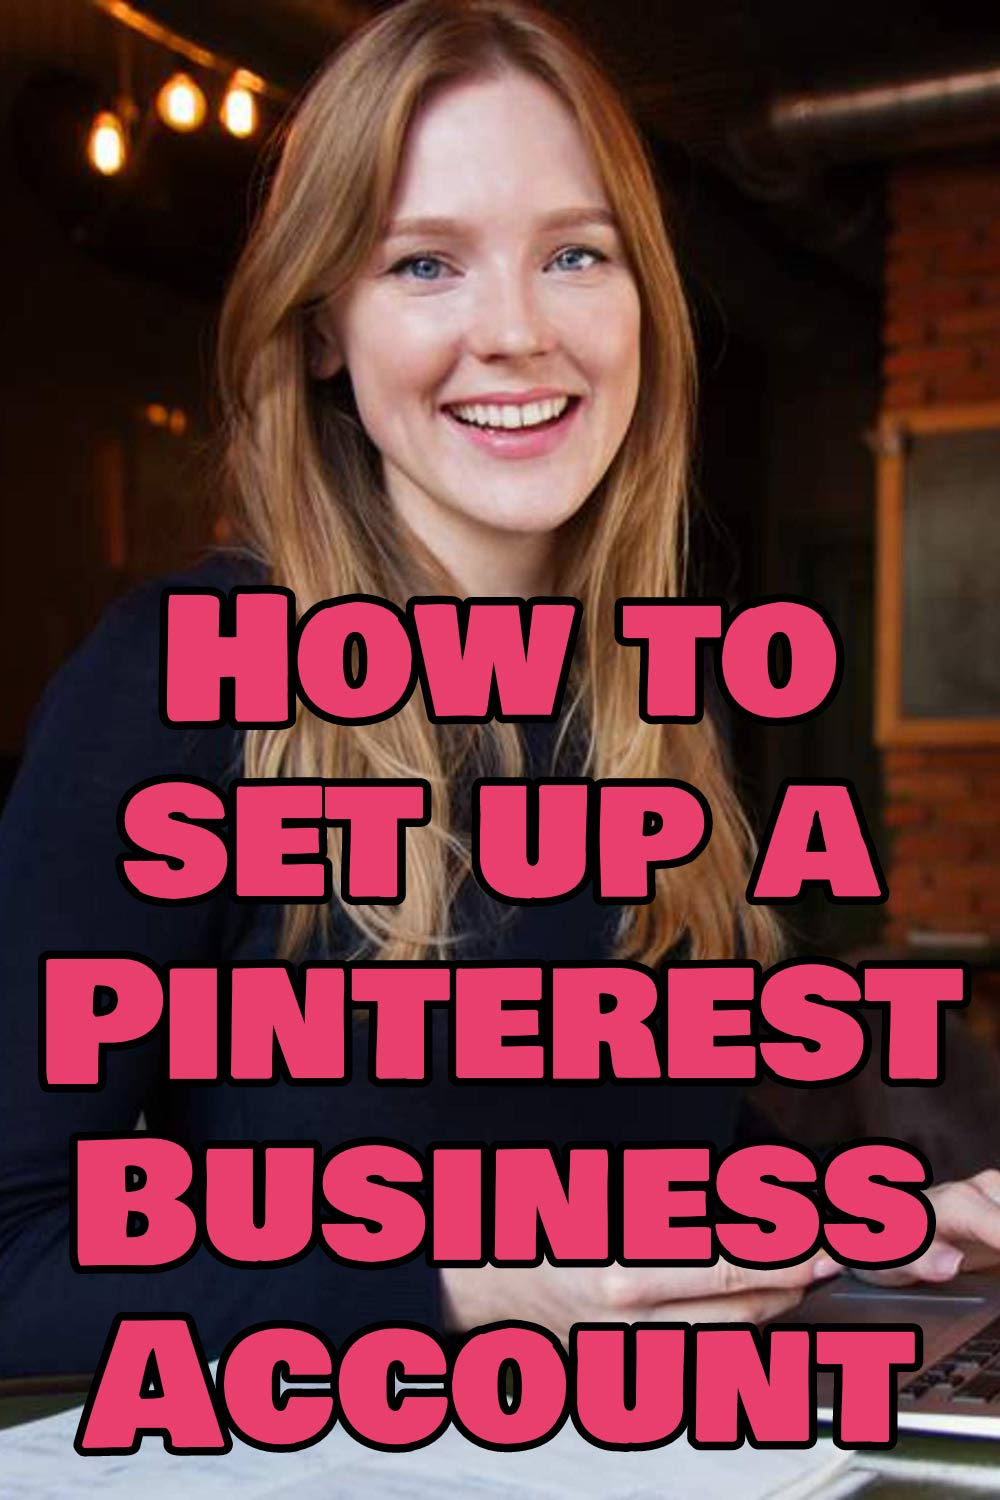 How to set up a Pinterest business account the right way. Detailed instructions and screenshots so you can follow along screen-by-screen as I set up a Pinterest business account the right way so it's optimized for maximum reach.